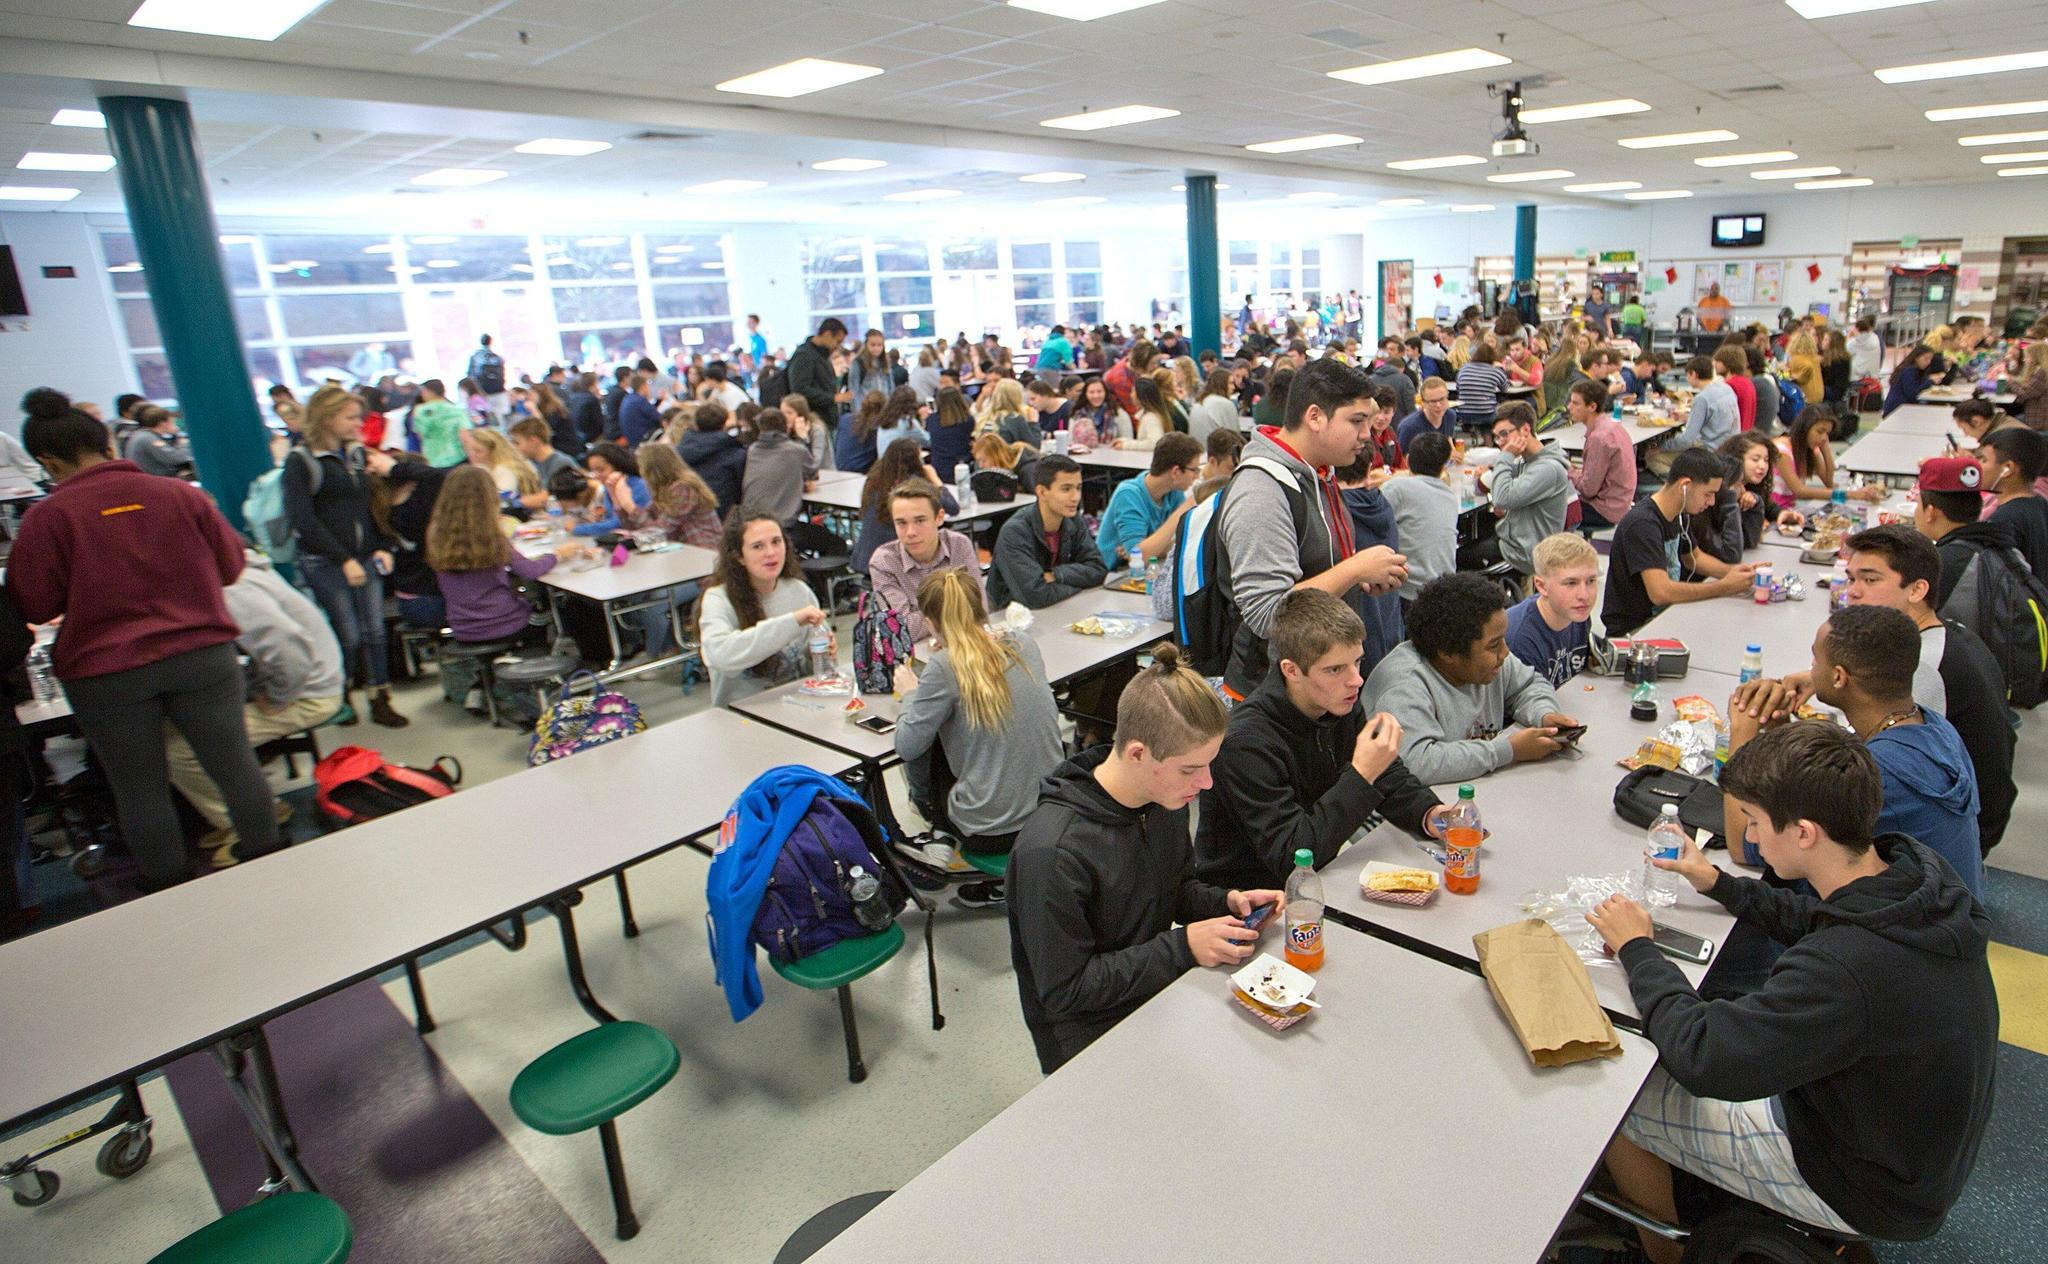 Expansion Jamestown High School Cafeteria - Daily Press